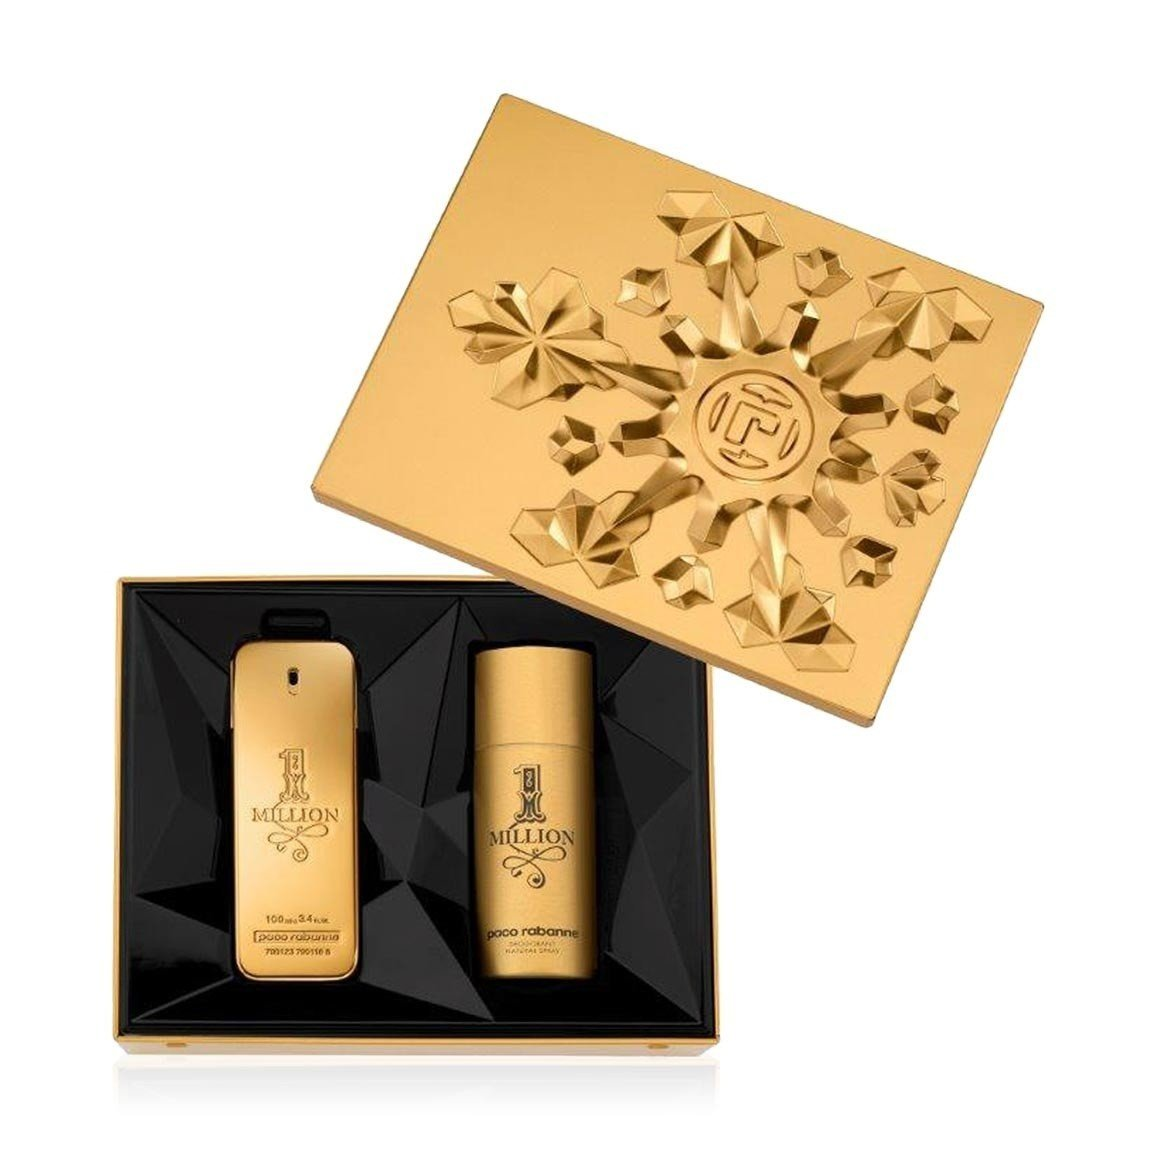 aad6722fa4982 Paco Rabanne 1 Million Gift Set 100ml EDT + 150ml Deo Spray – SoLippy